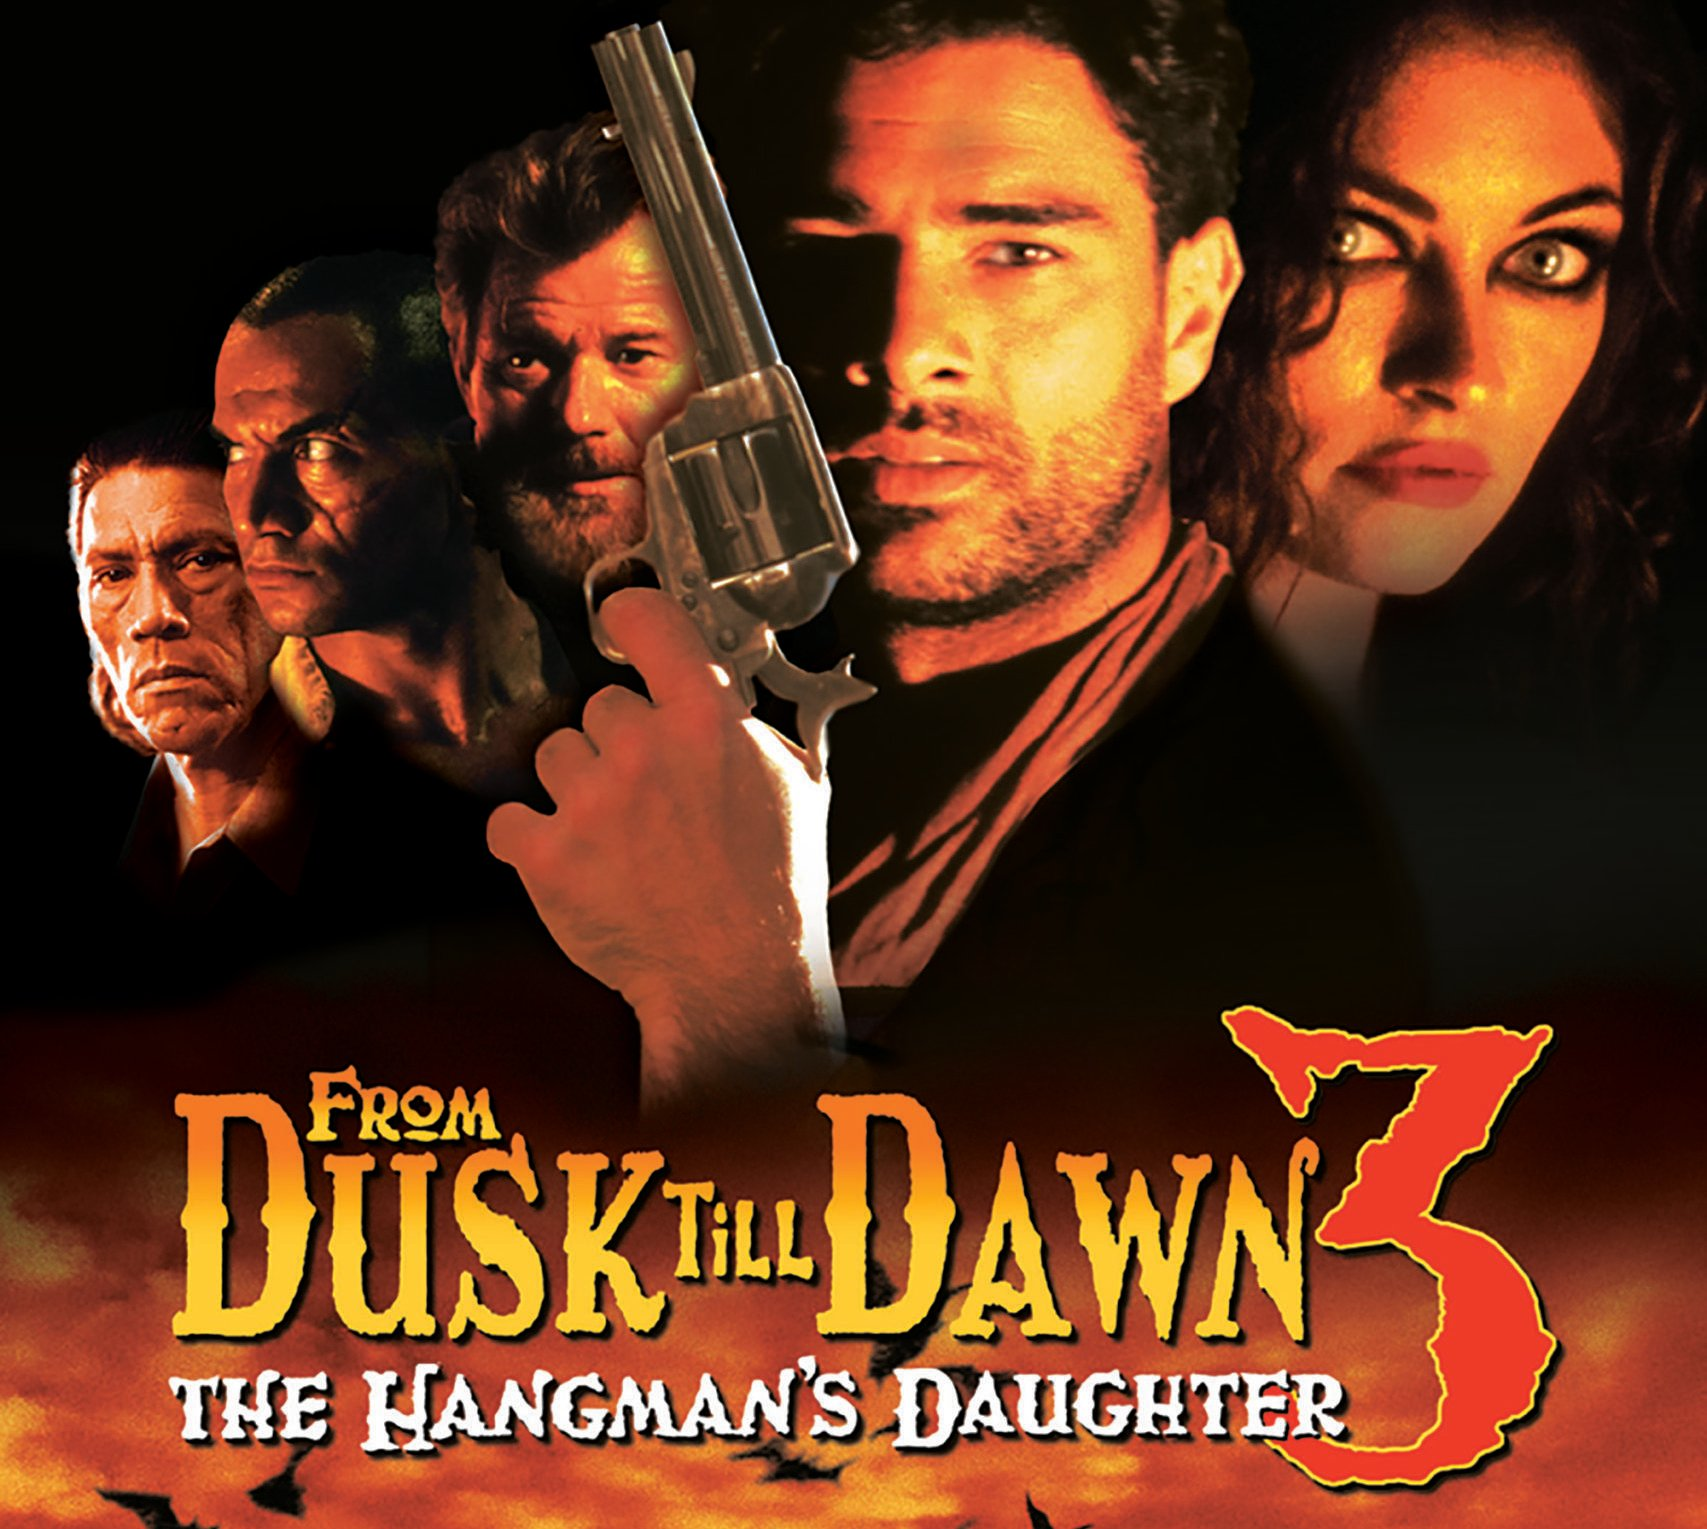 119133812 scaled e1610722001719 20 Fang-tastic Facts About From Dusk Till Dawn